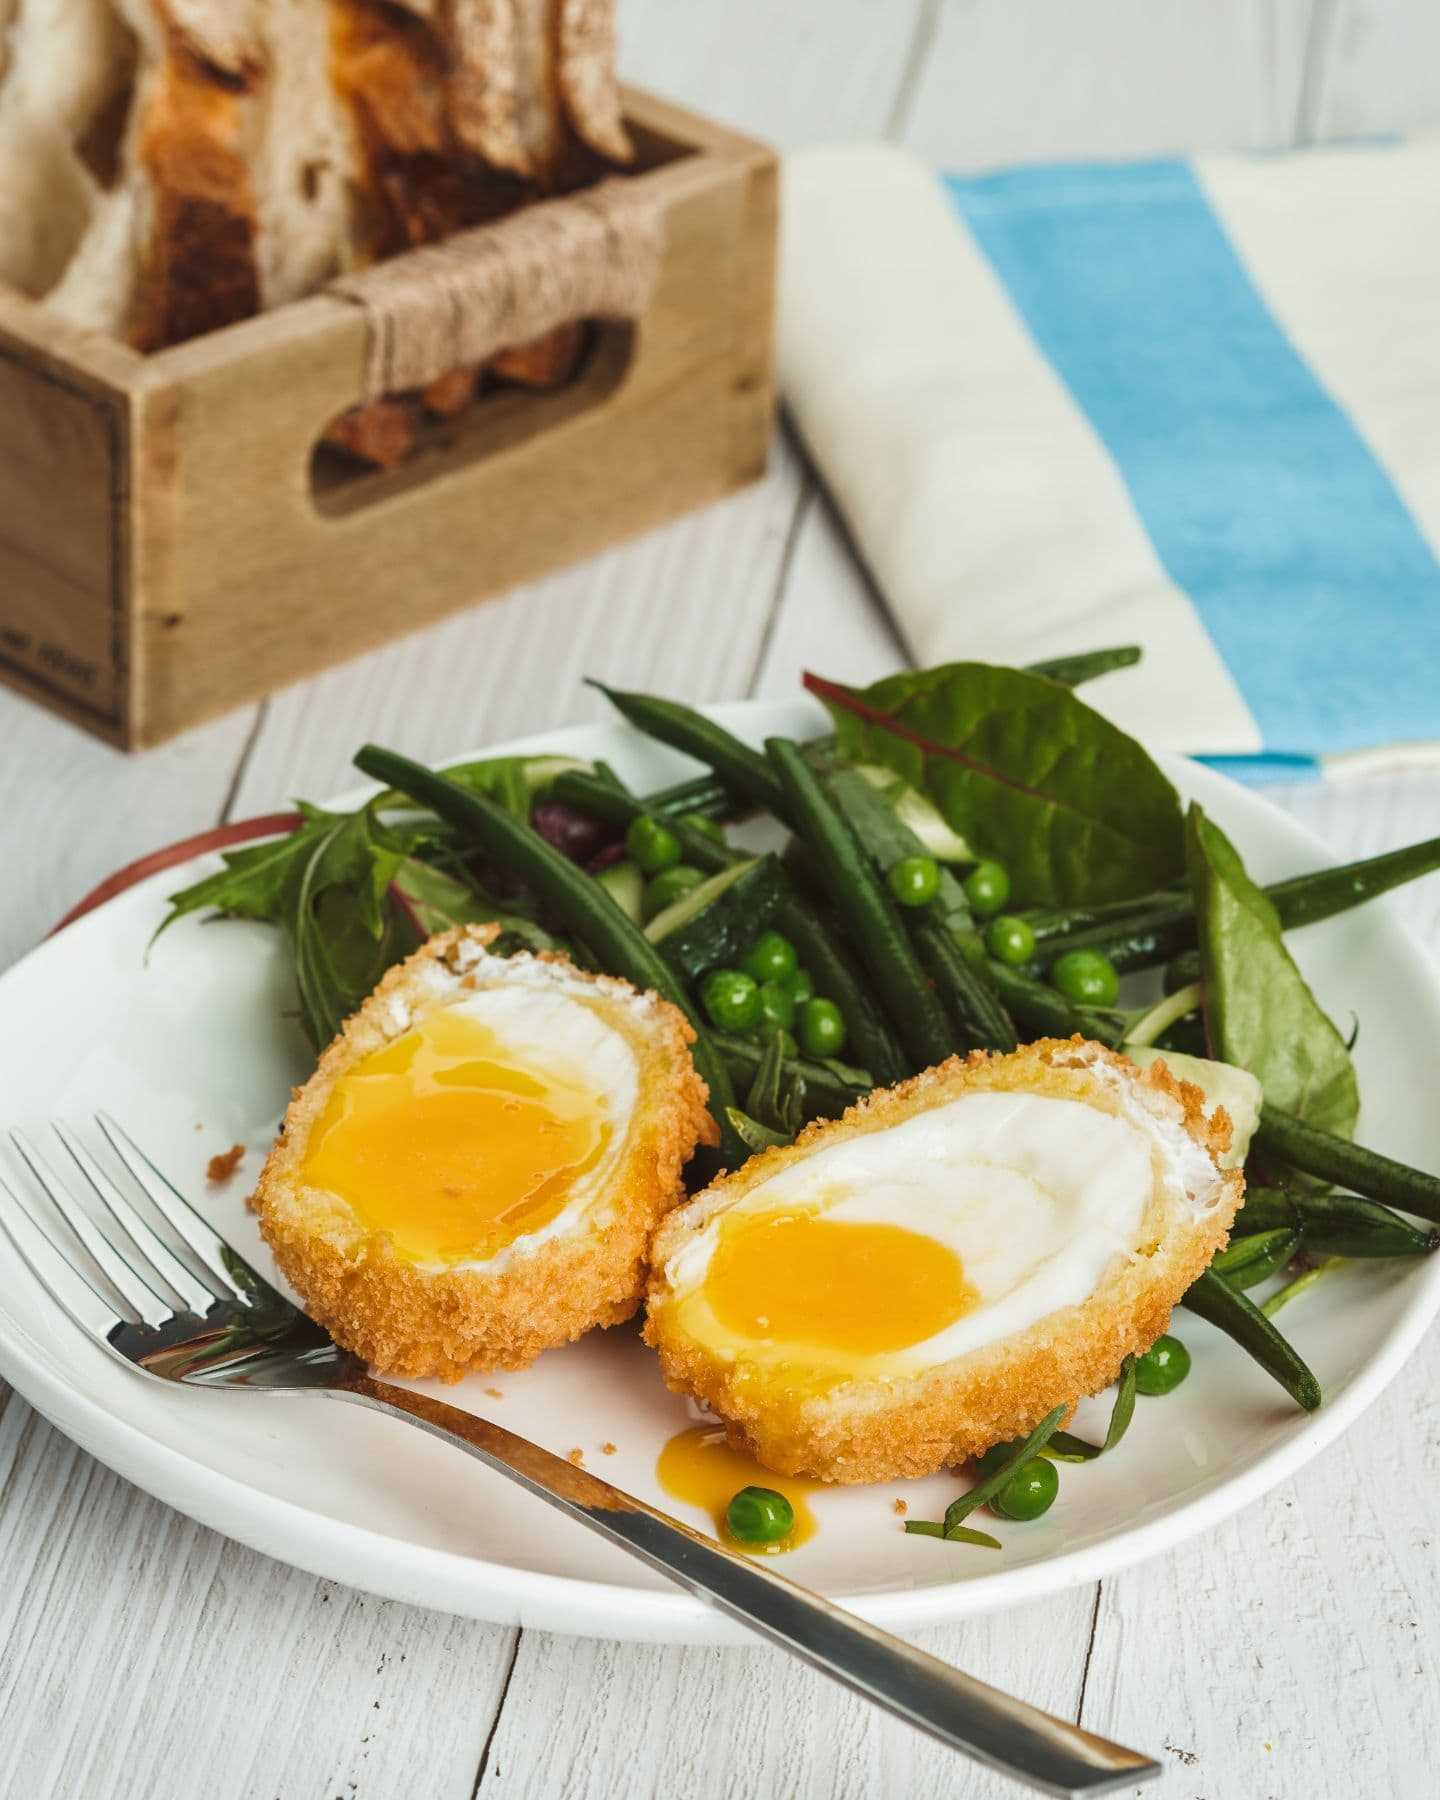 Crispy eggs with a summer salad on a plate with fork